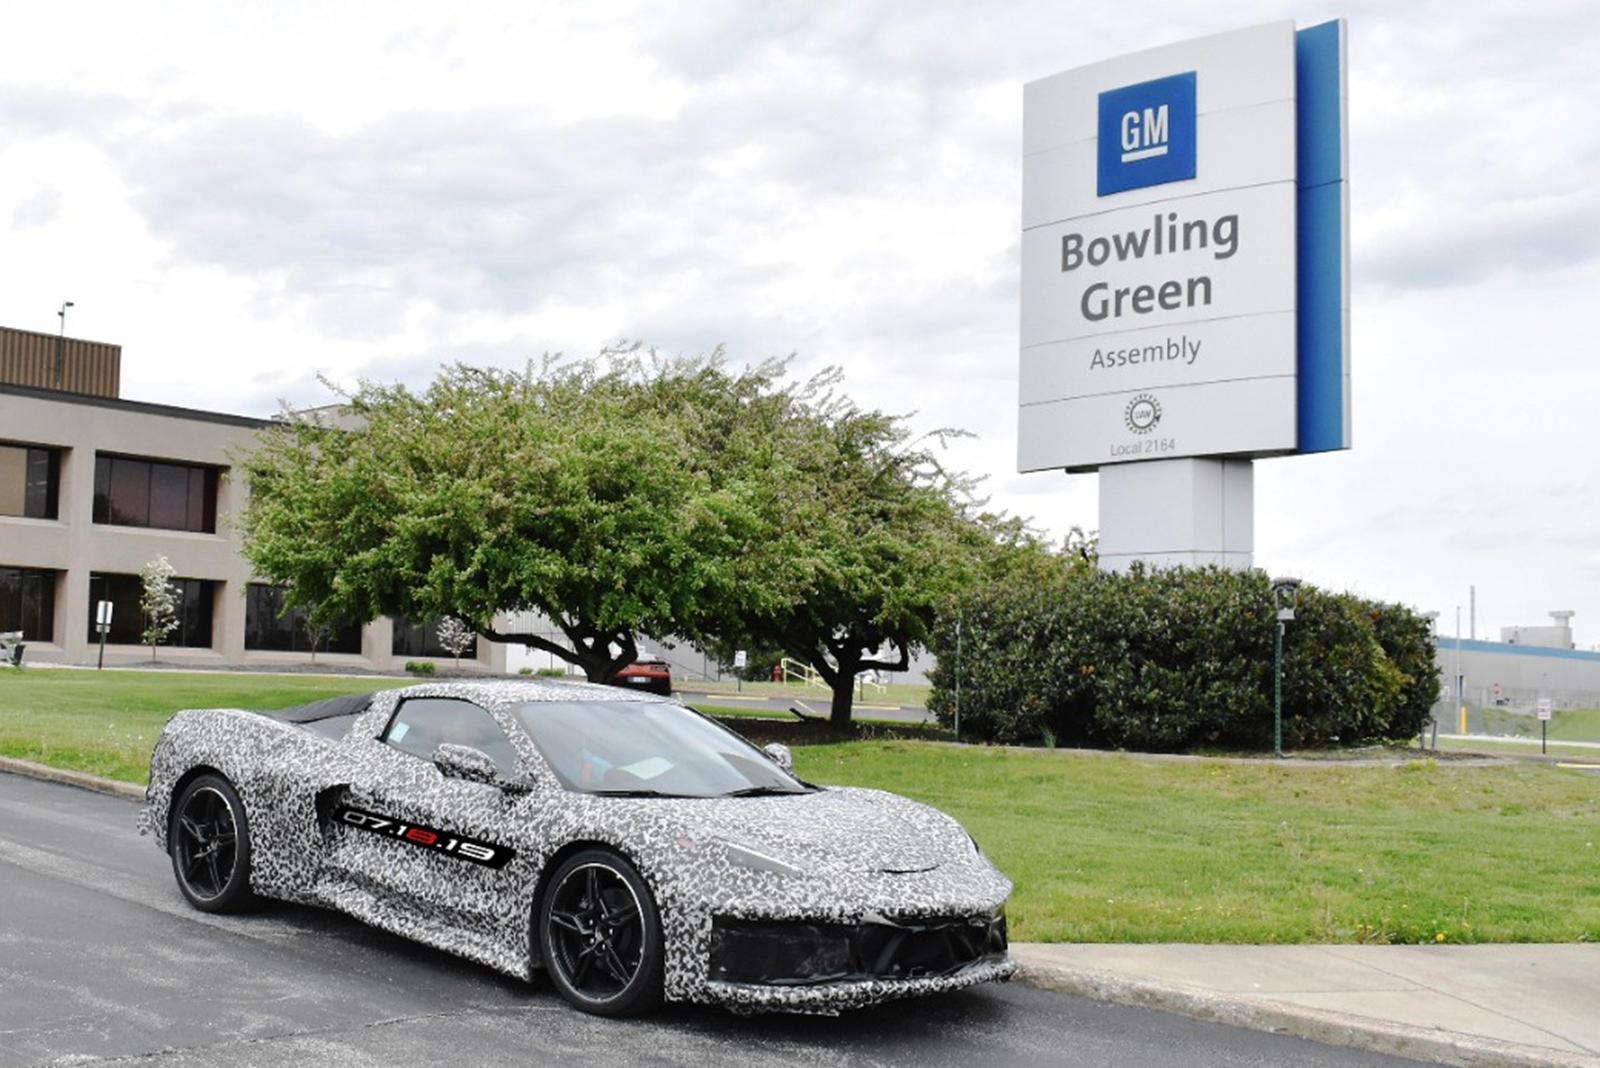 Chevy Already Needs Help To Keep Up With Demand For The New Corvette